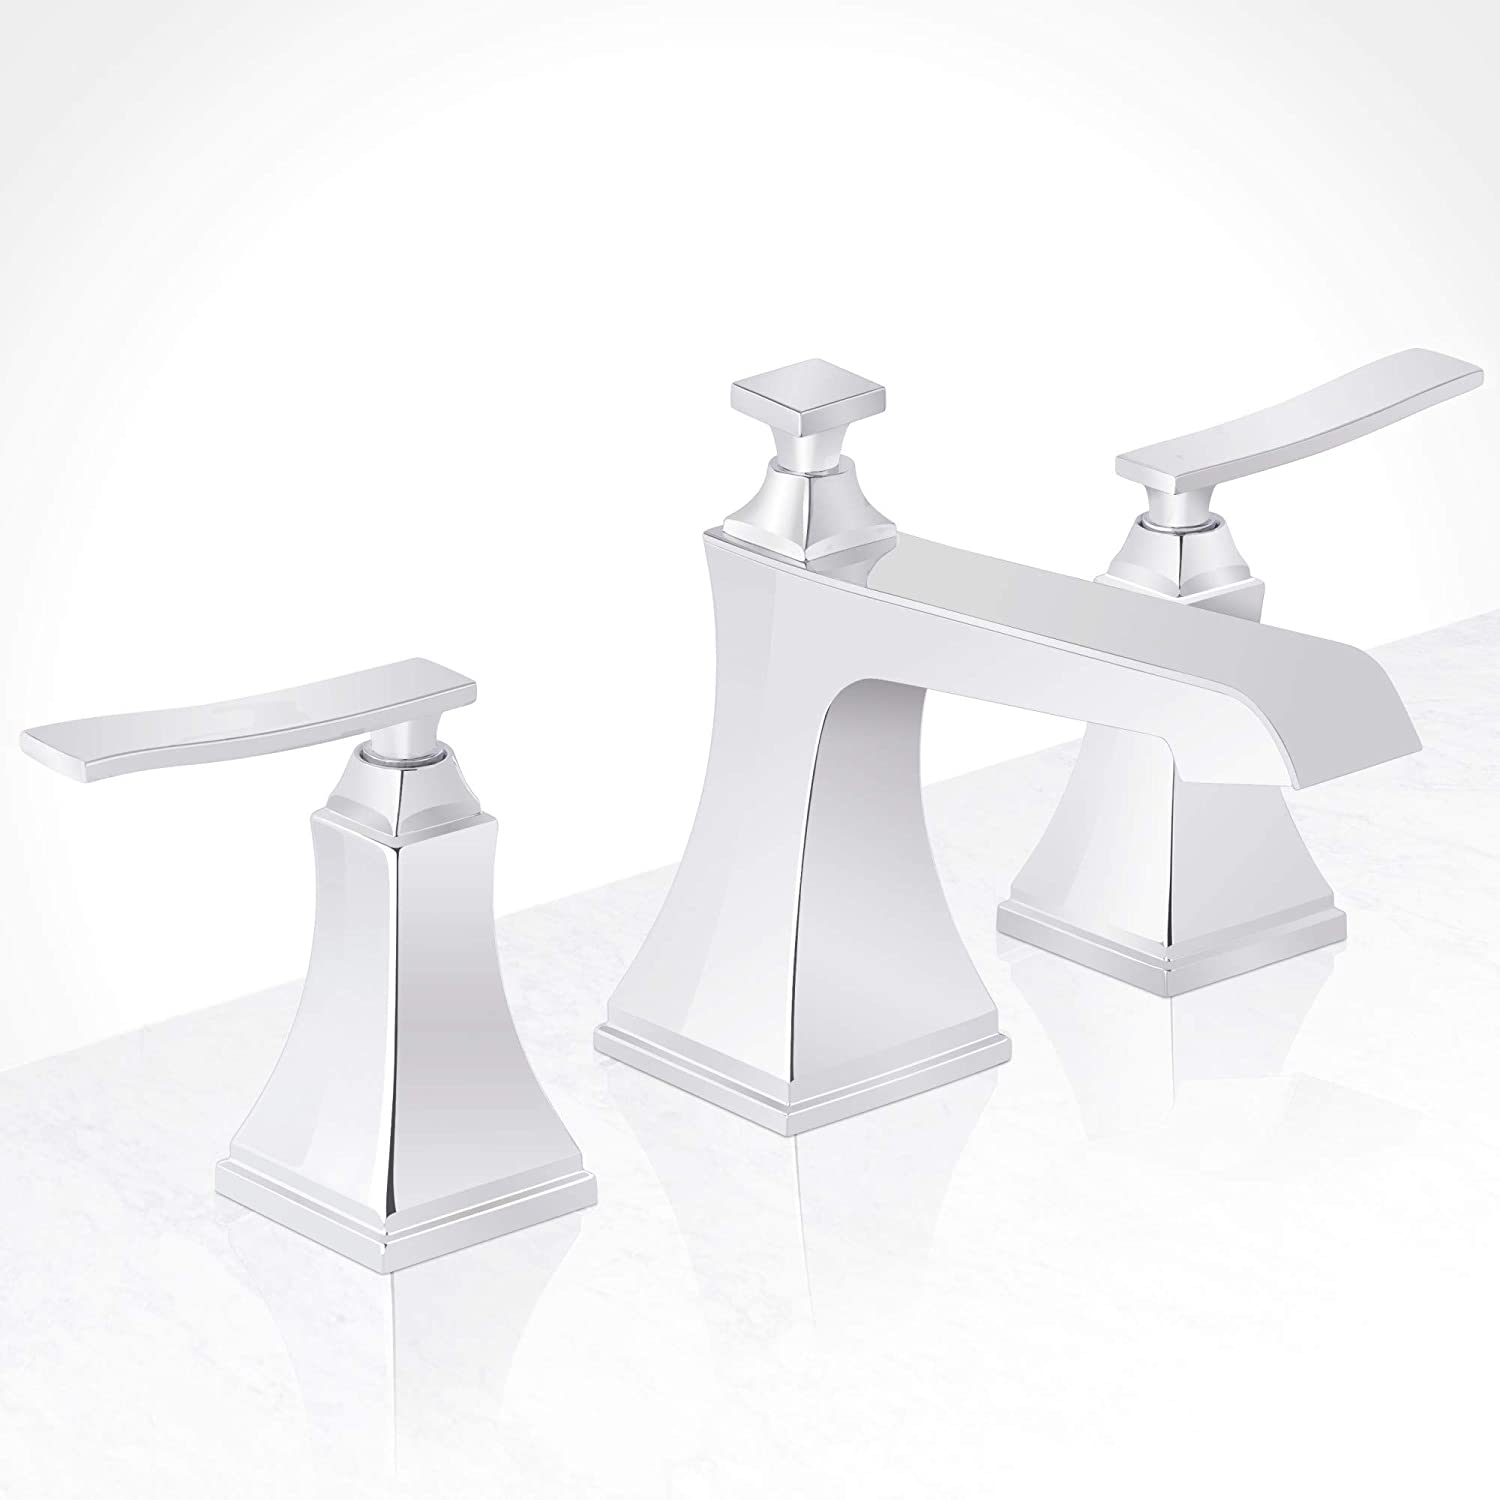 Miseno ML801 Elysa-B Widespread Bathroom Faucet - Includes Pop-Up Drain Assembly